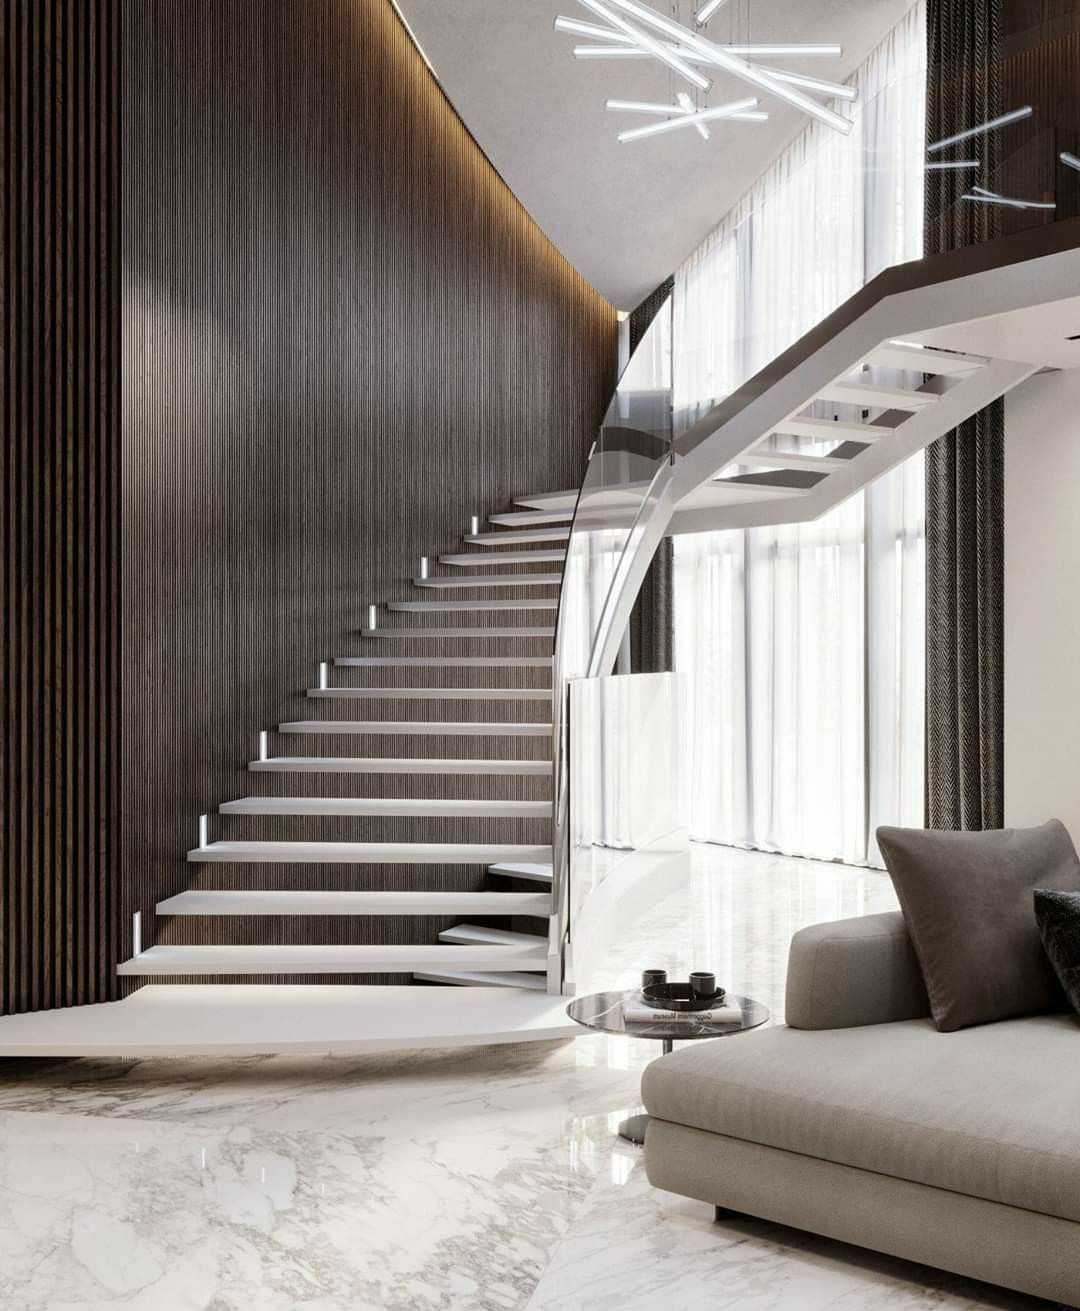 20 Excellent Traditional Staircases Design Ideas: Pin By Justin Low On Paragon Height In 2020 (With Images